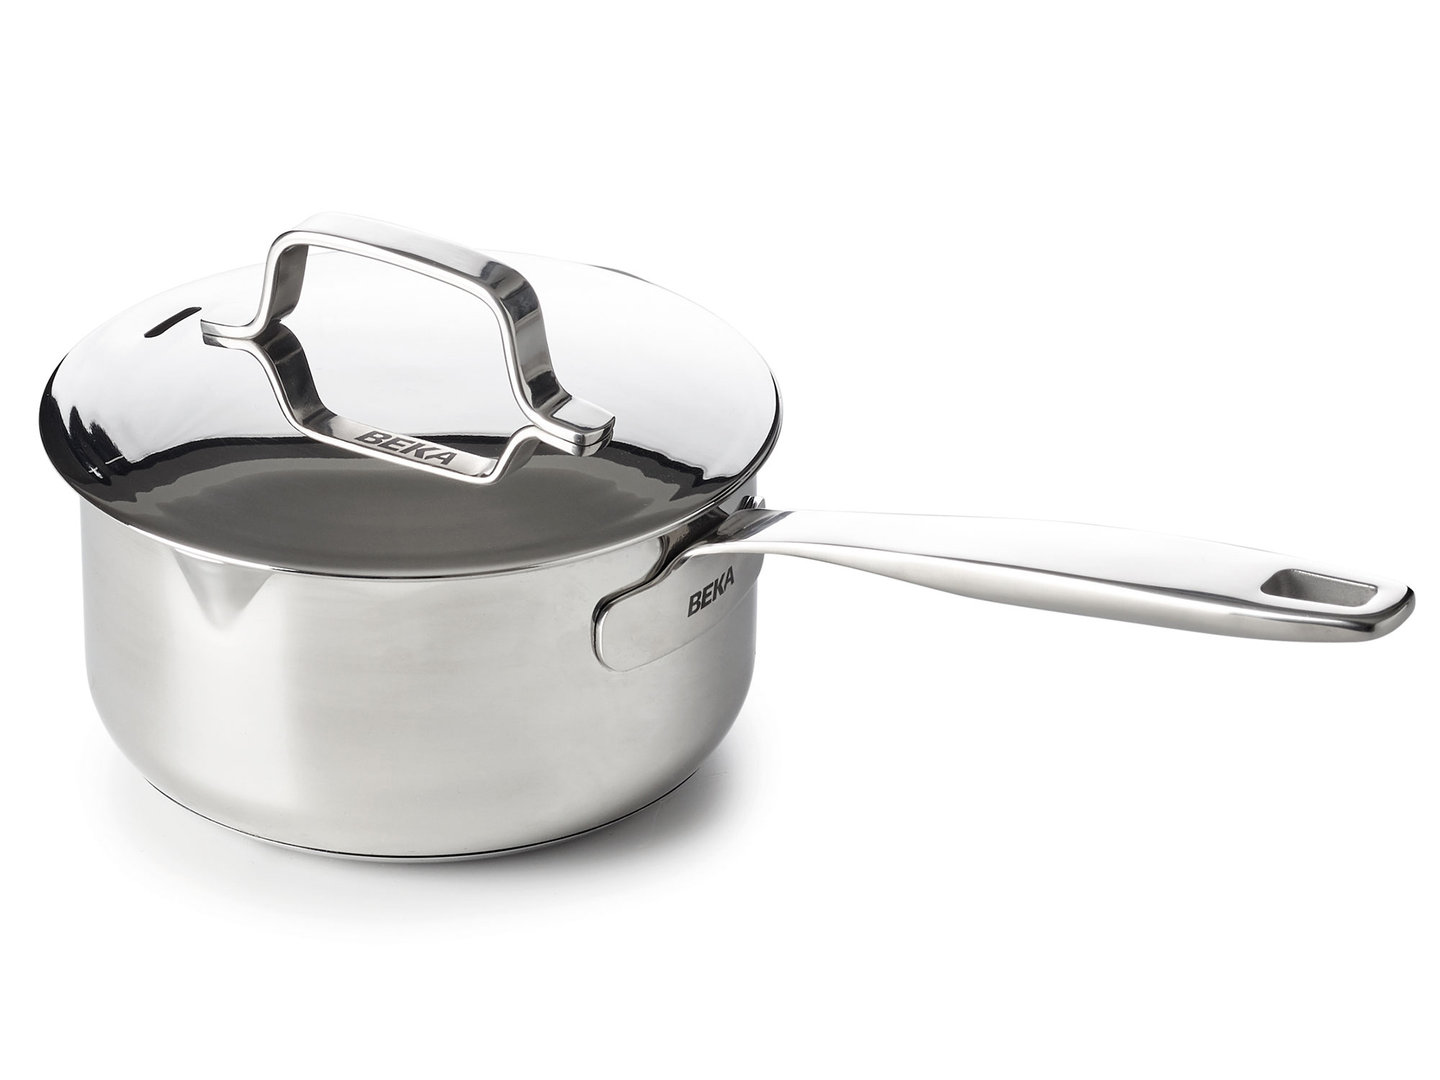 BEKA saucepan MAESTRO 16 cm stainless steel with lid 1.6 L